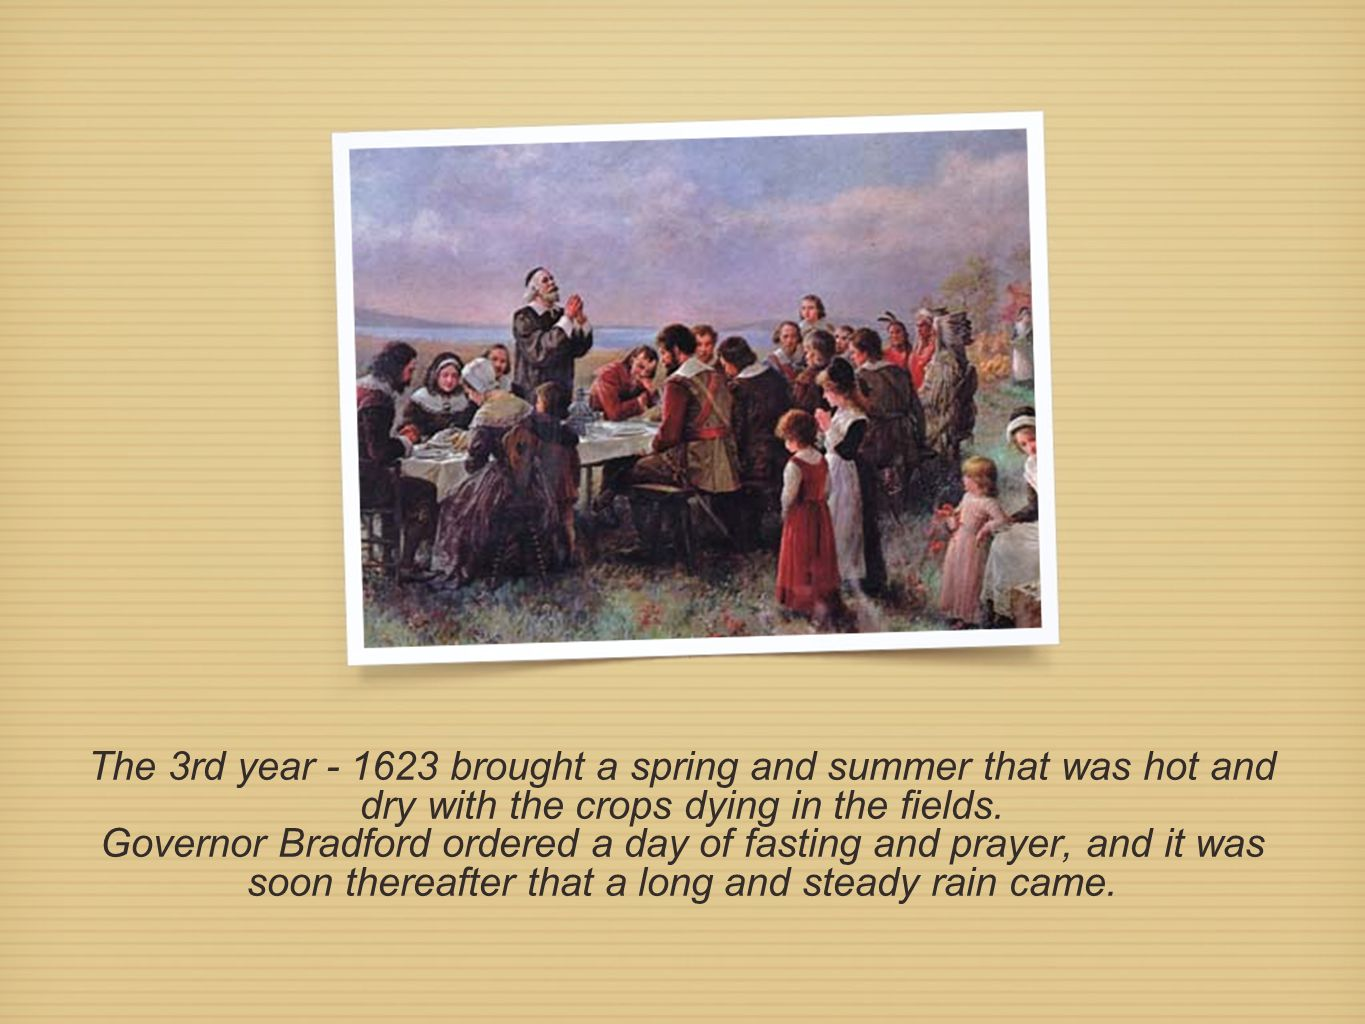 The 3rd year - 1623 brought a spring and summer that was hot and dry with the crops dying in the fields.